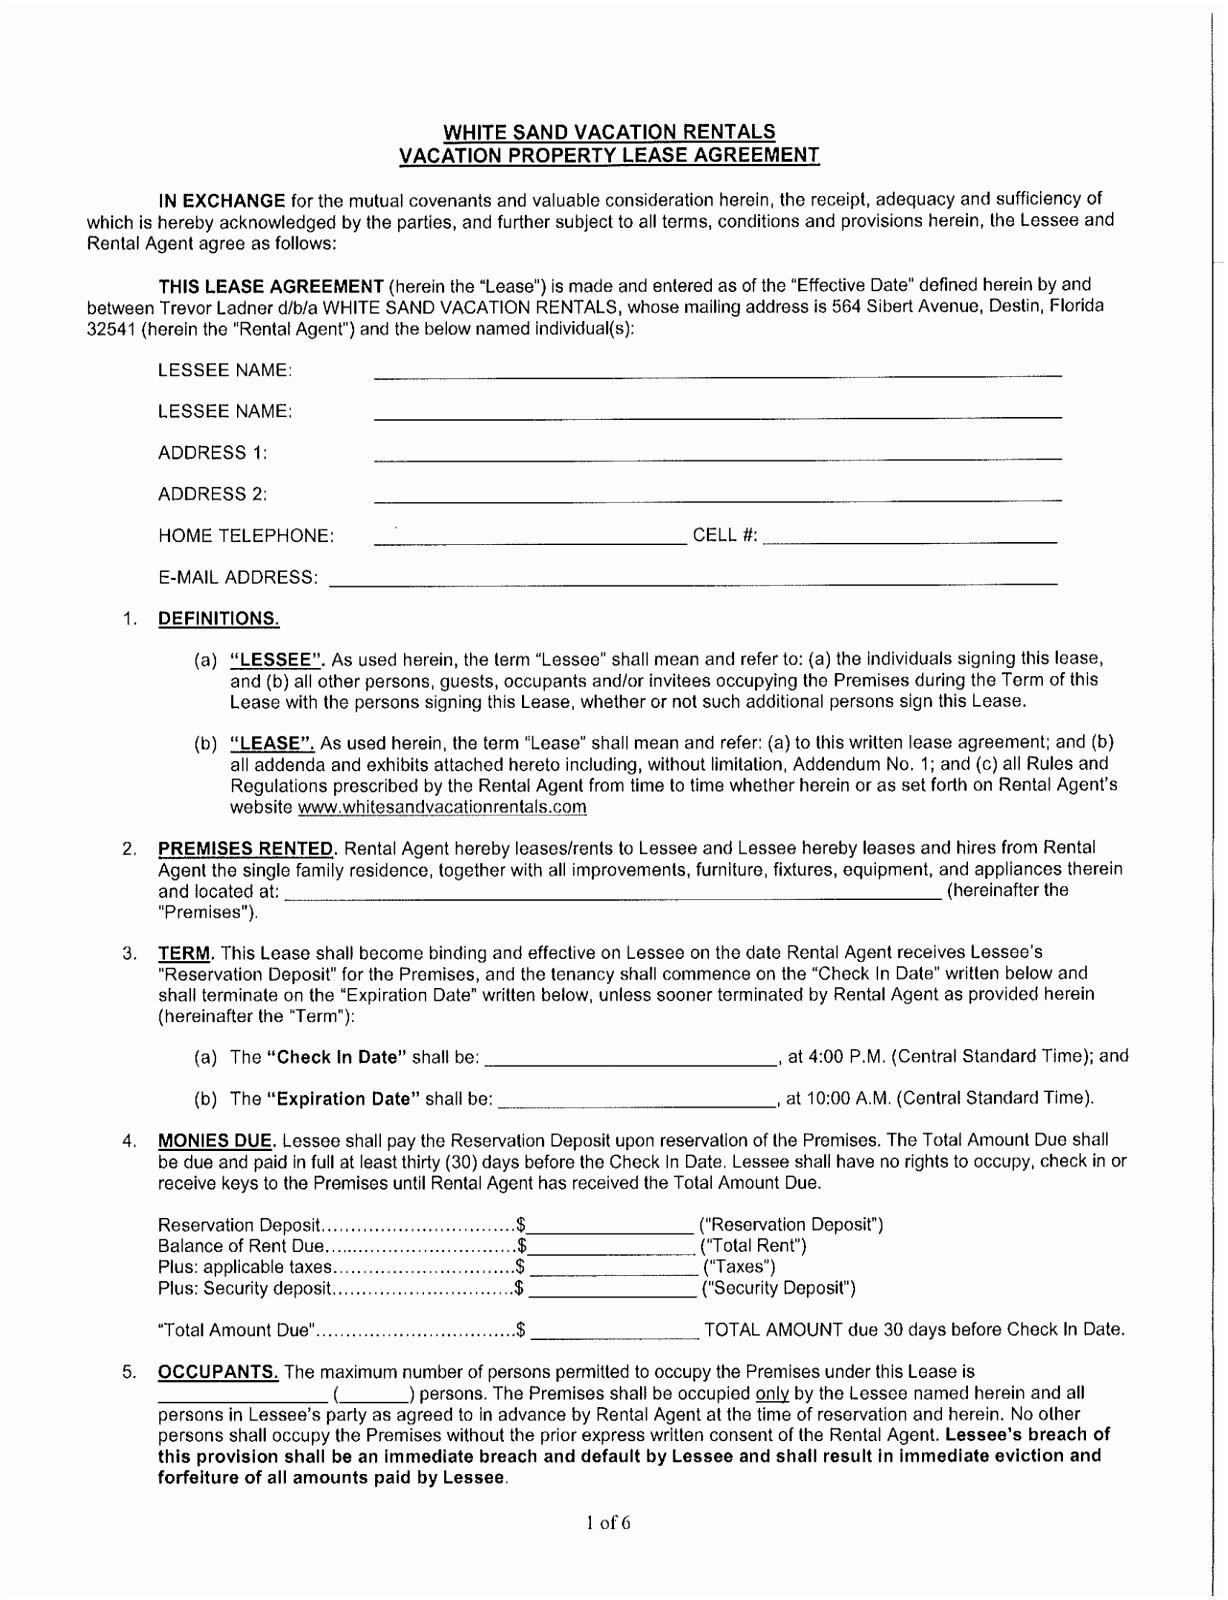 Florida Vacation Rental Agreement Template